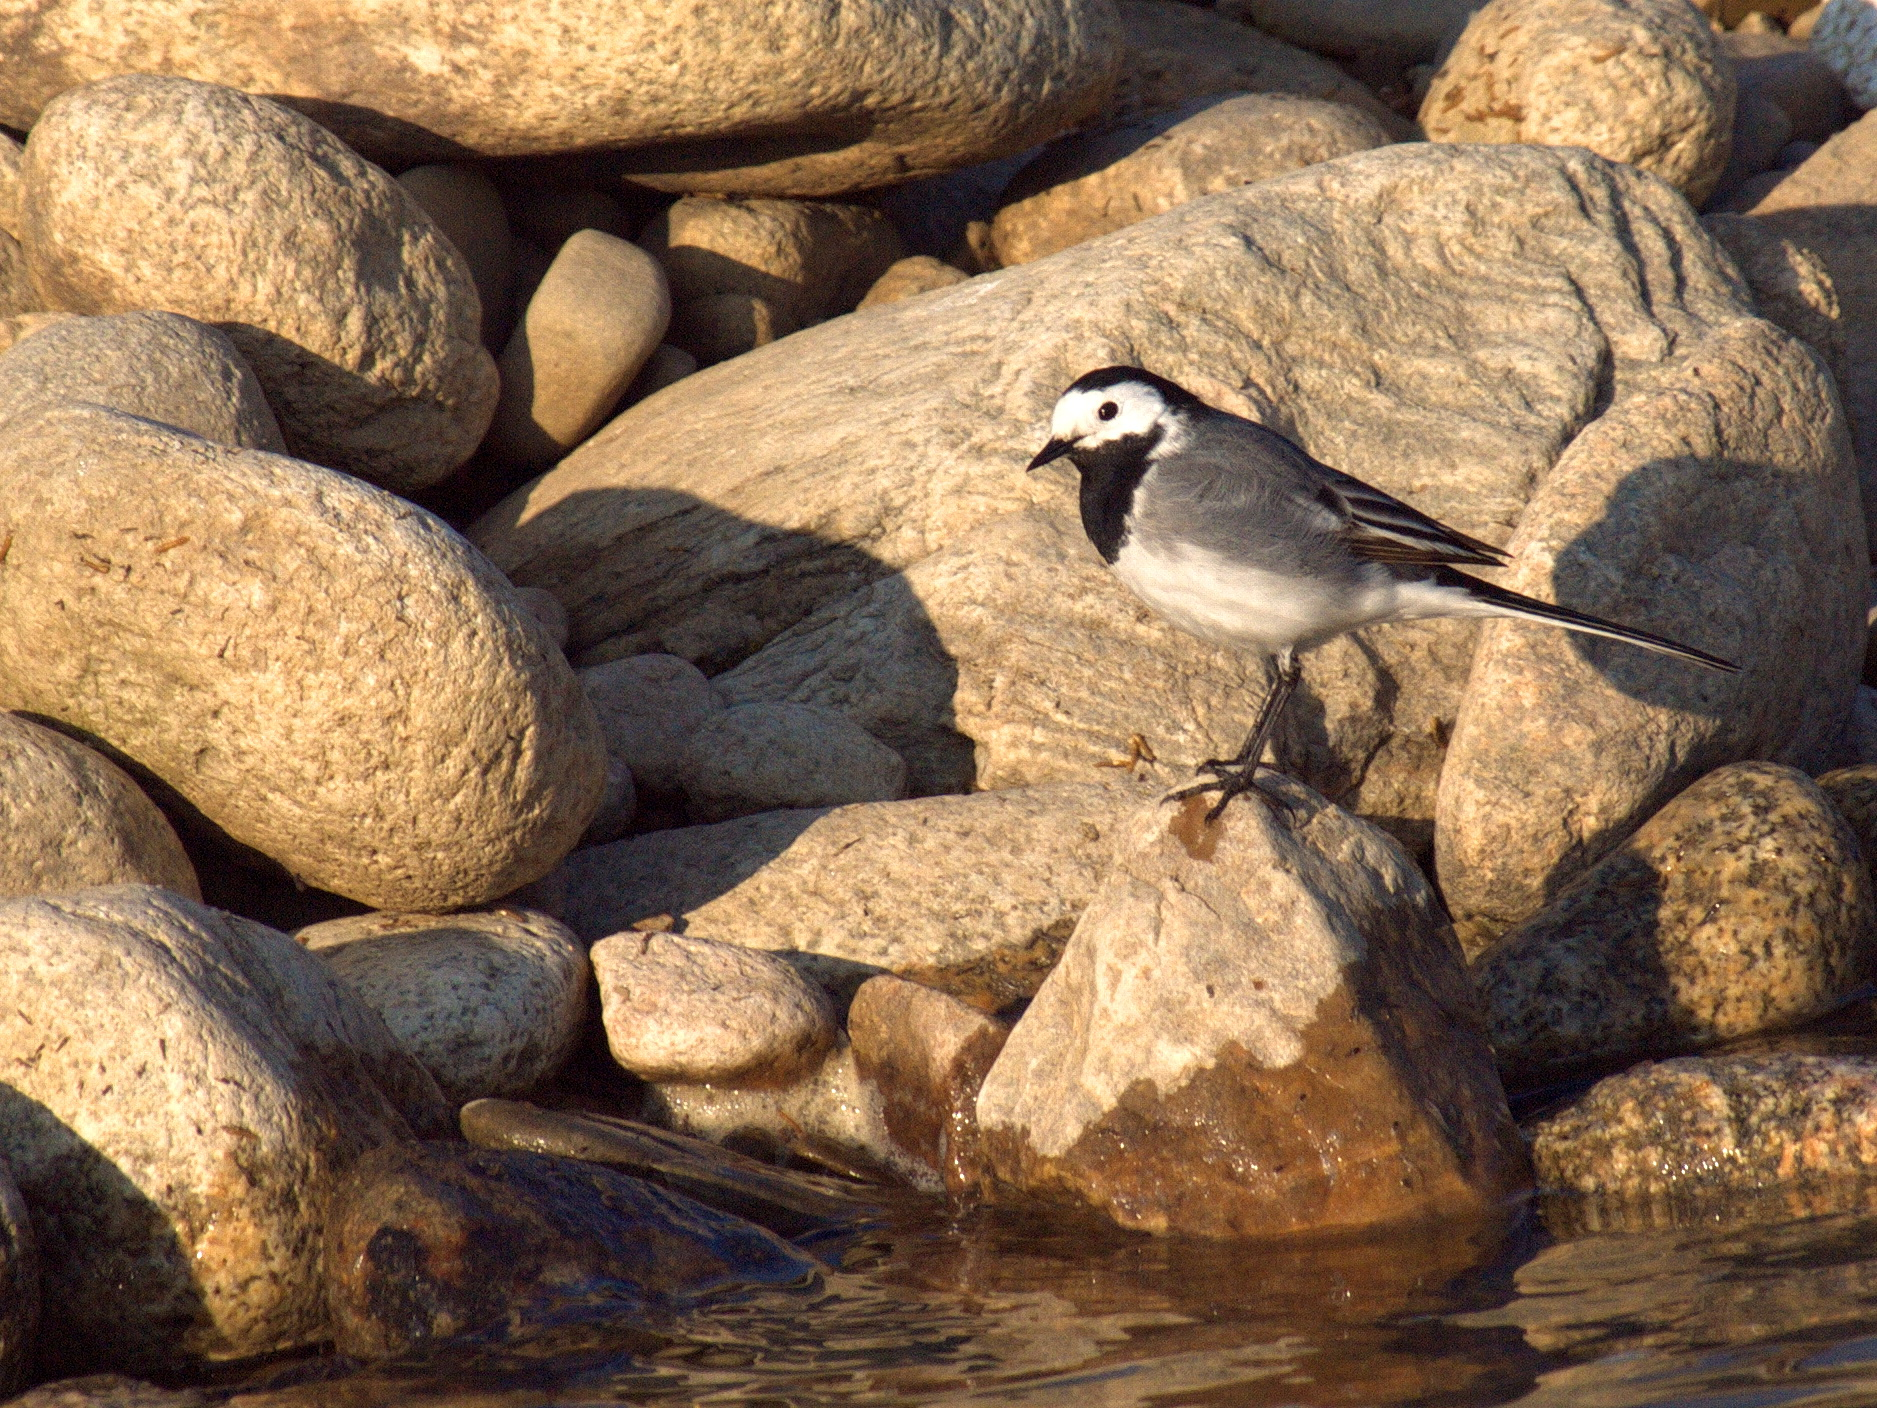 White wagtail on a rock by the river